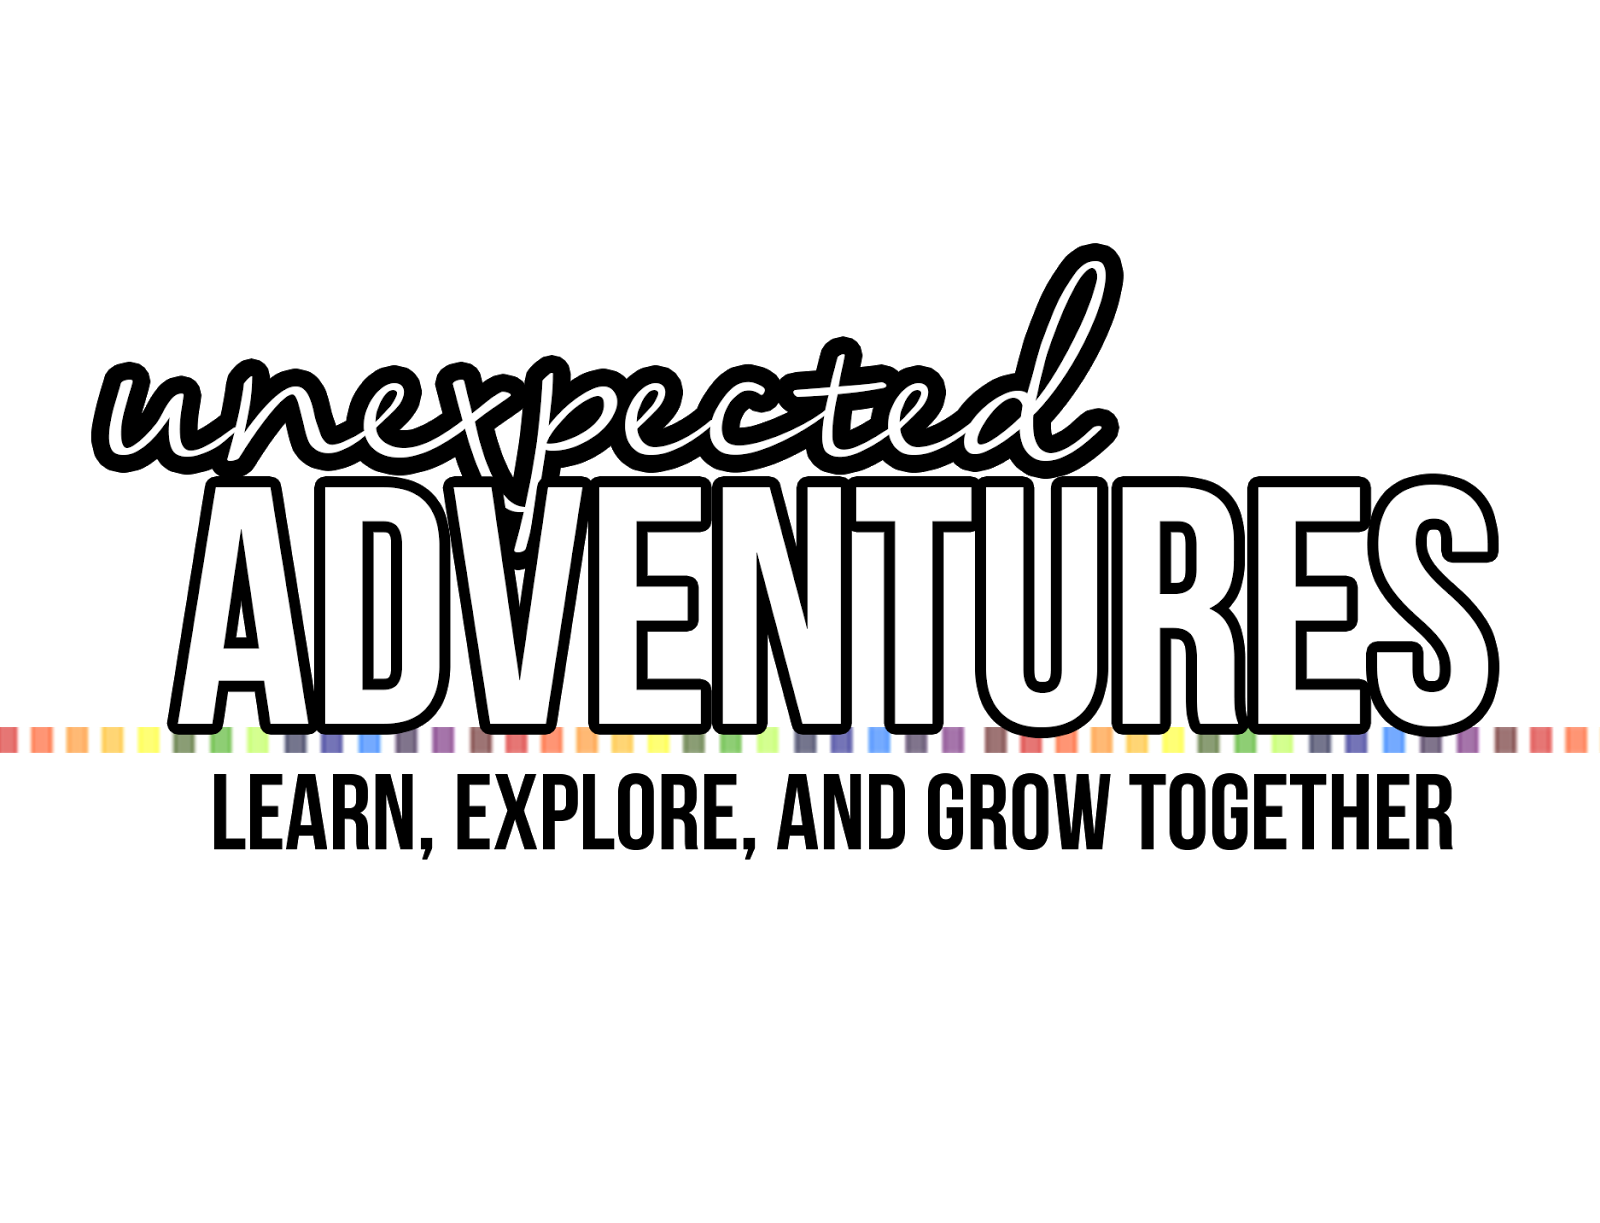 Unexpected Adventures: Learn, explore, and grow together - The fun in traveling as young newlyweds!